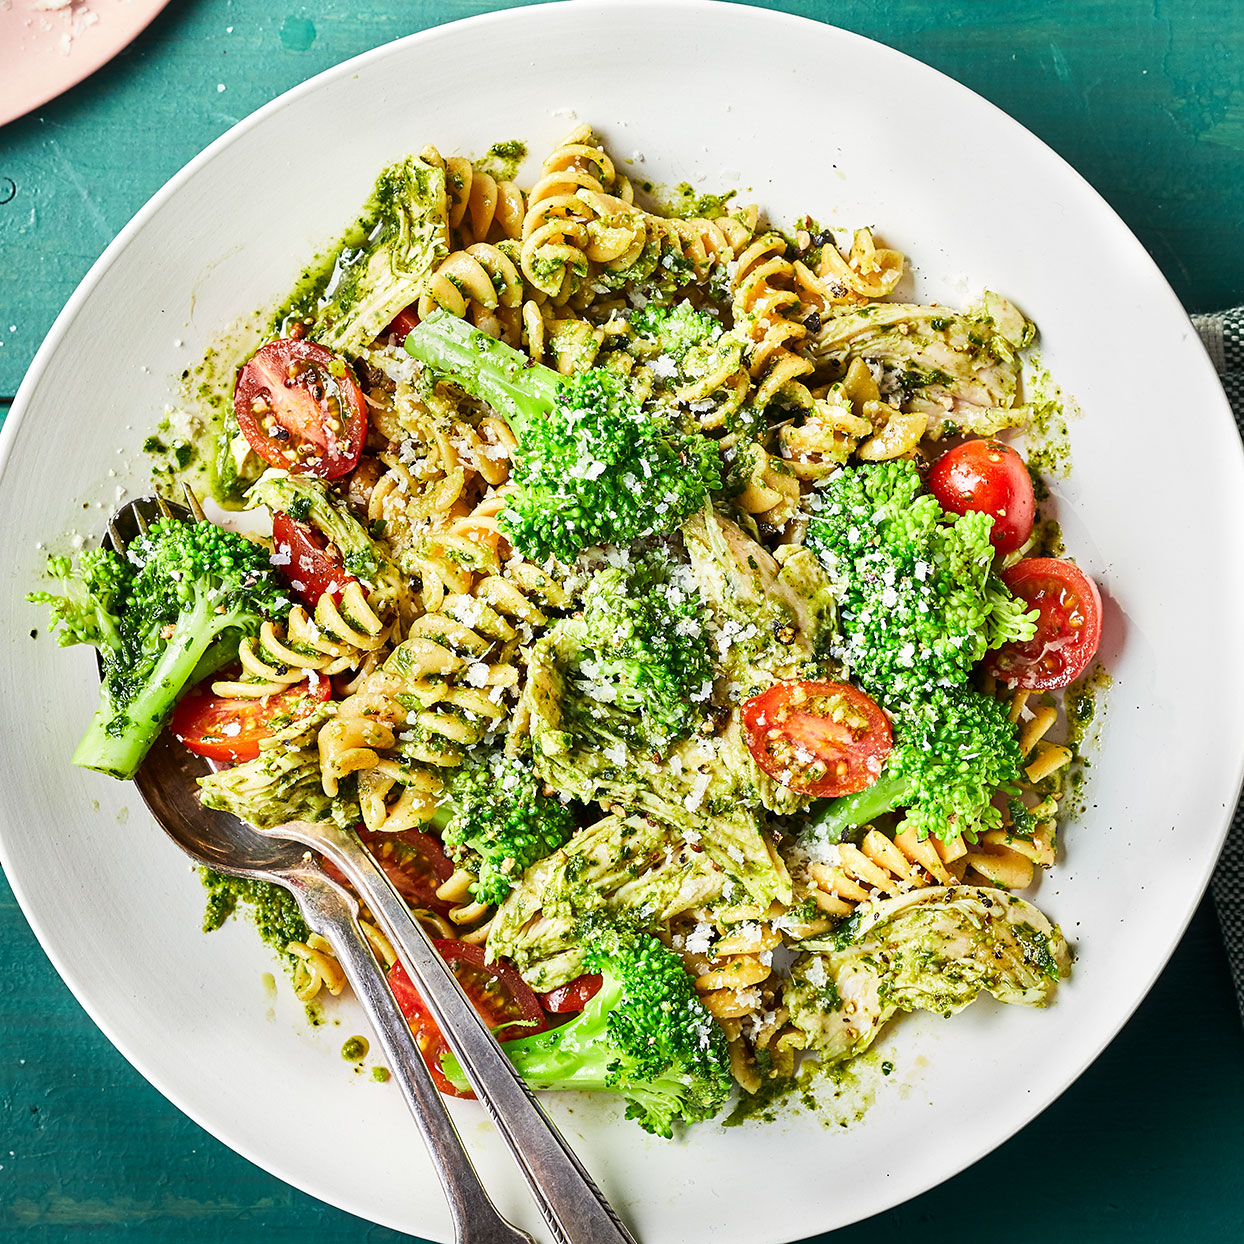 Turkey, Pesto & Broccoli Pasta Hilary Meyer